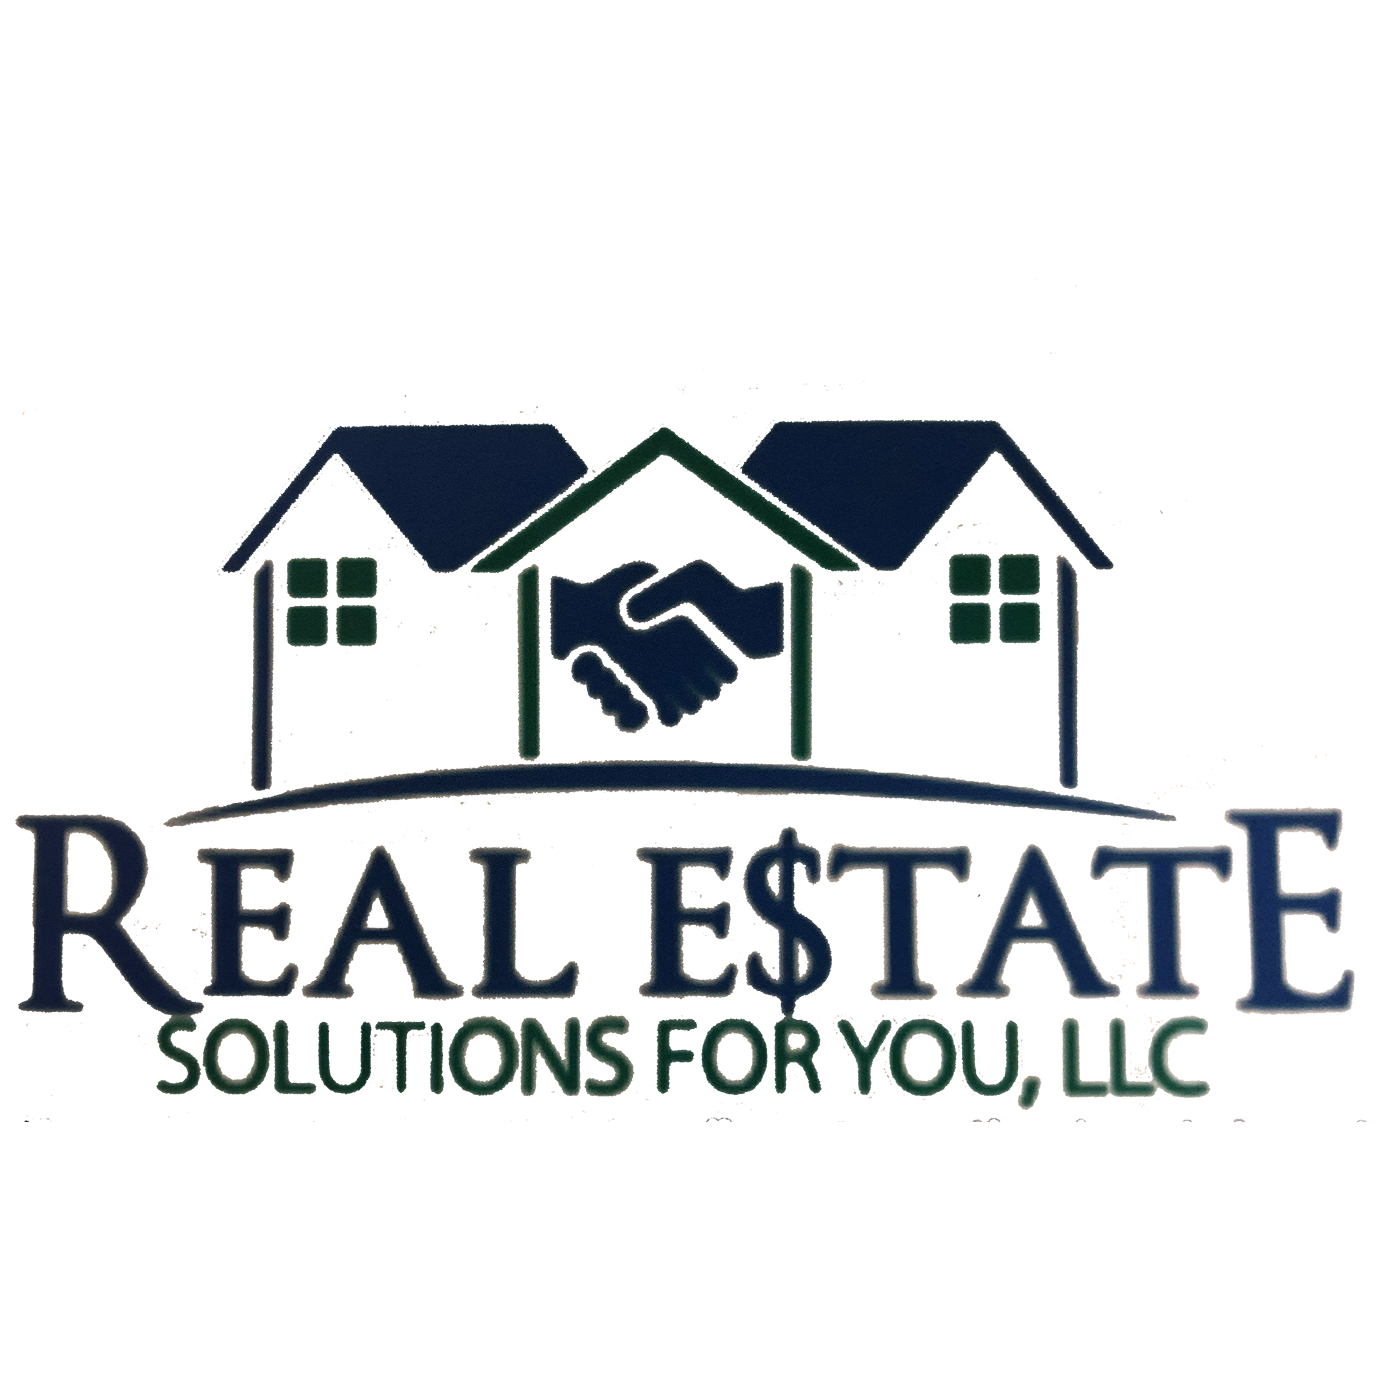 Real Estate Solutions For You, LLC